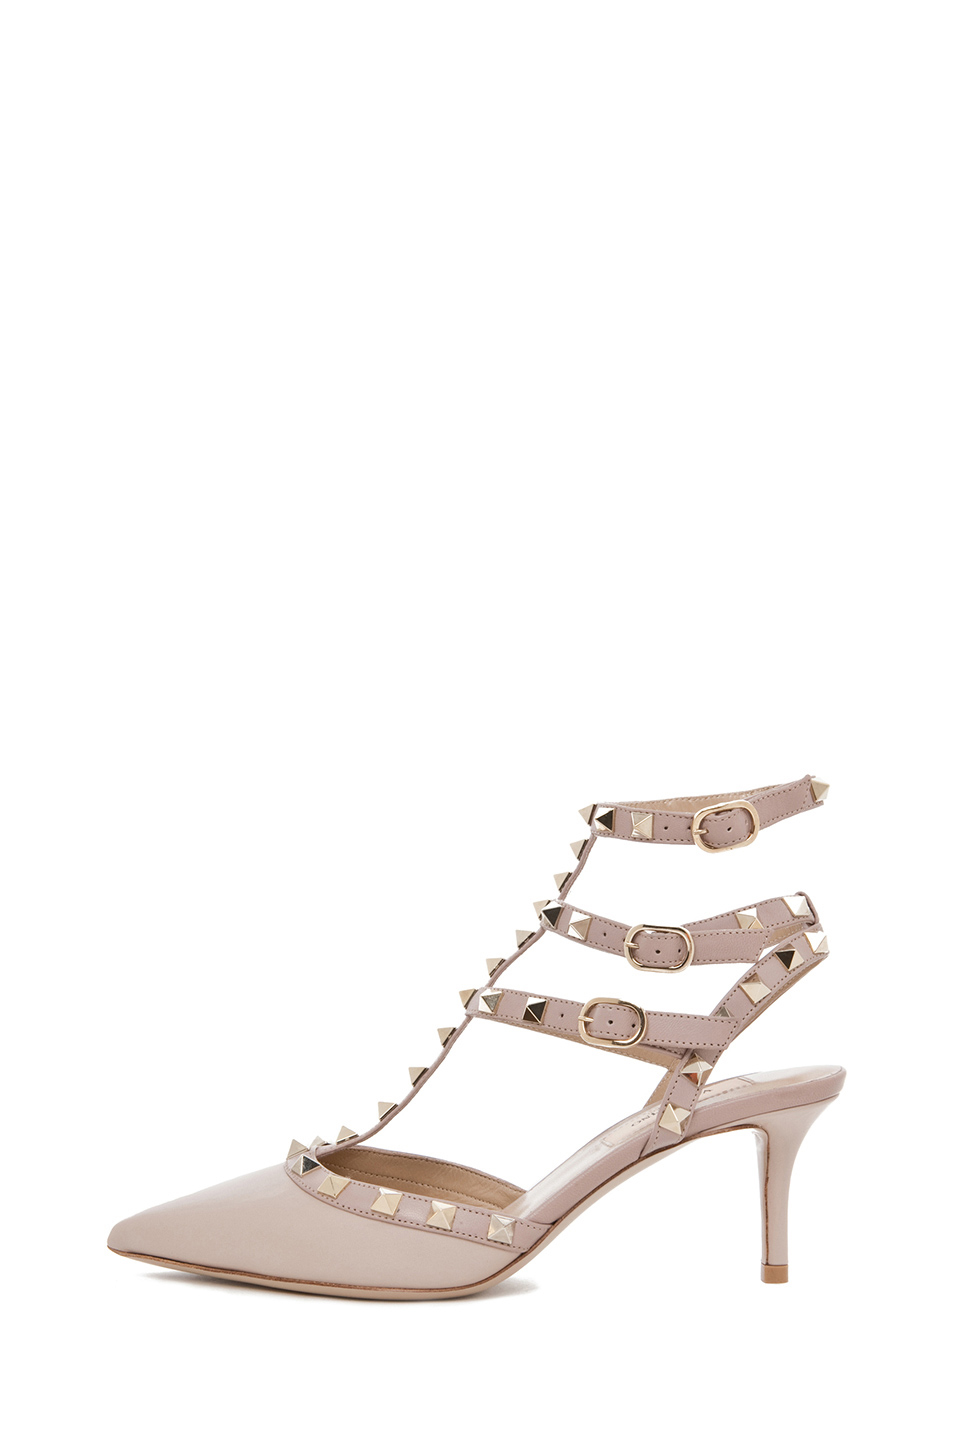 Valentino | Rockstud Leather Slingbacks T.65 in Powder